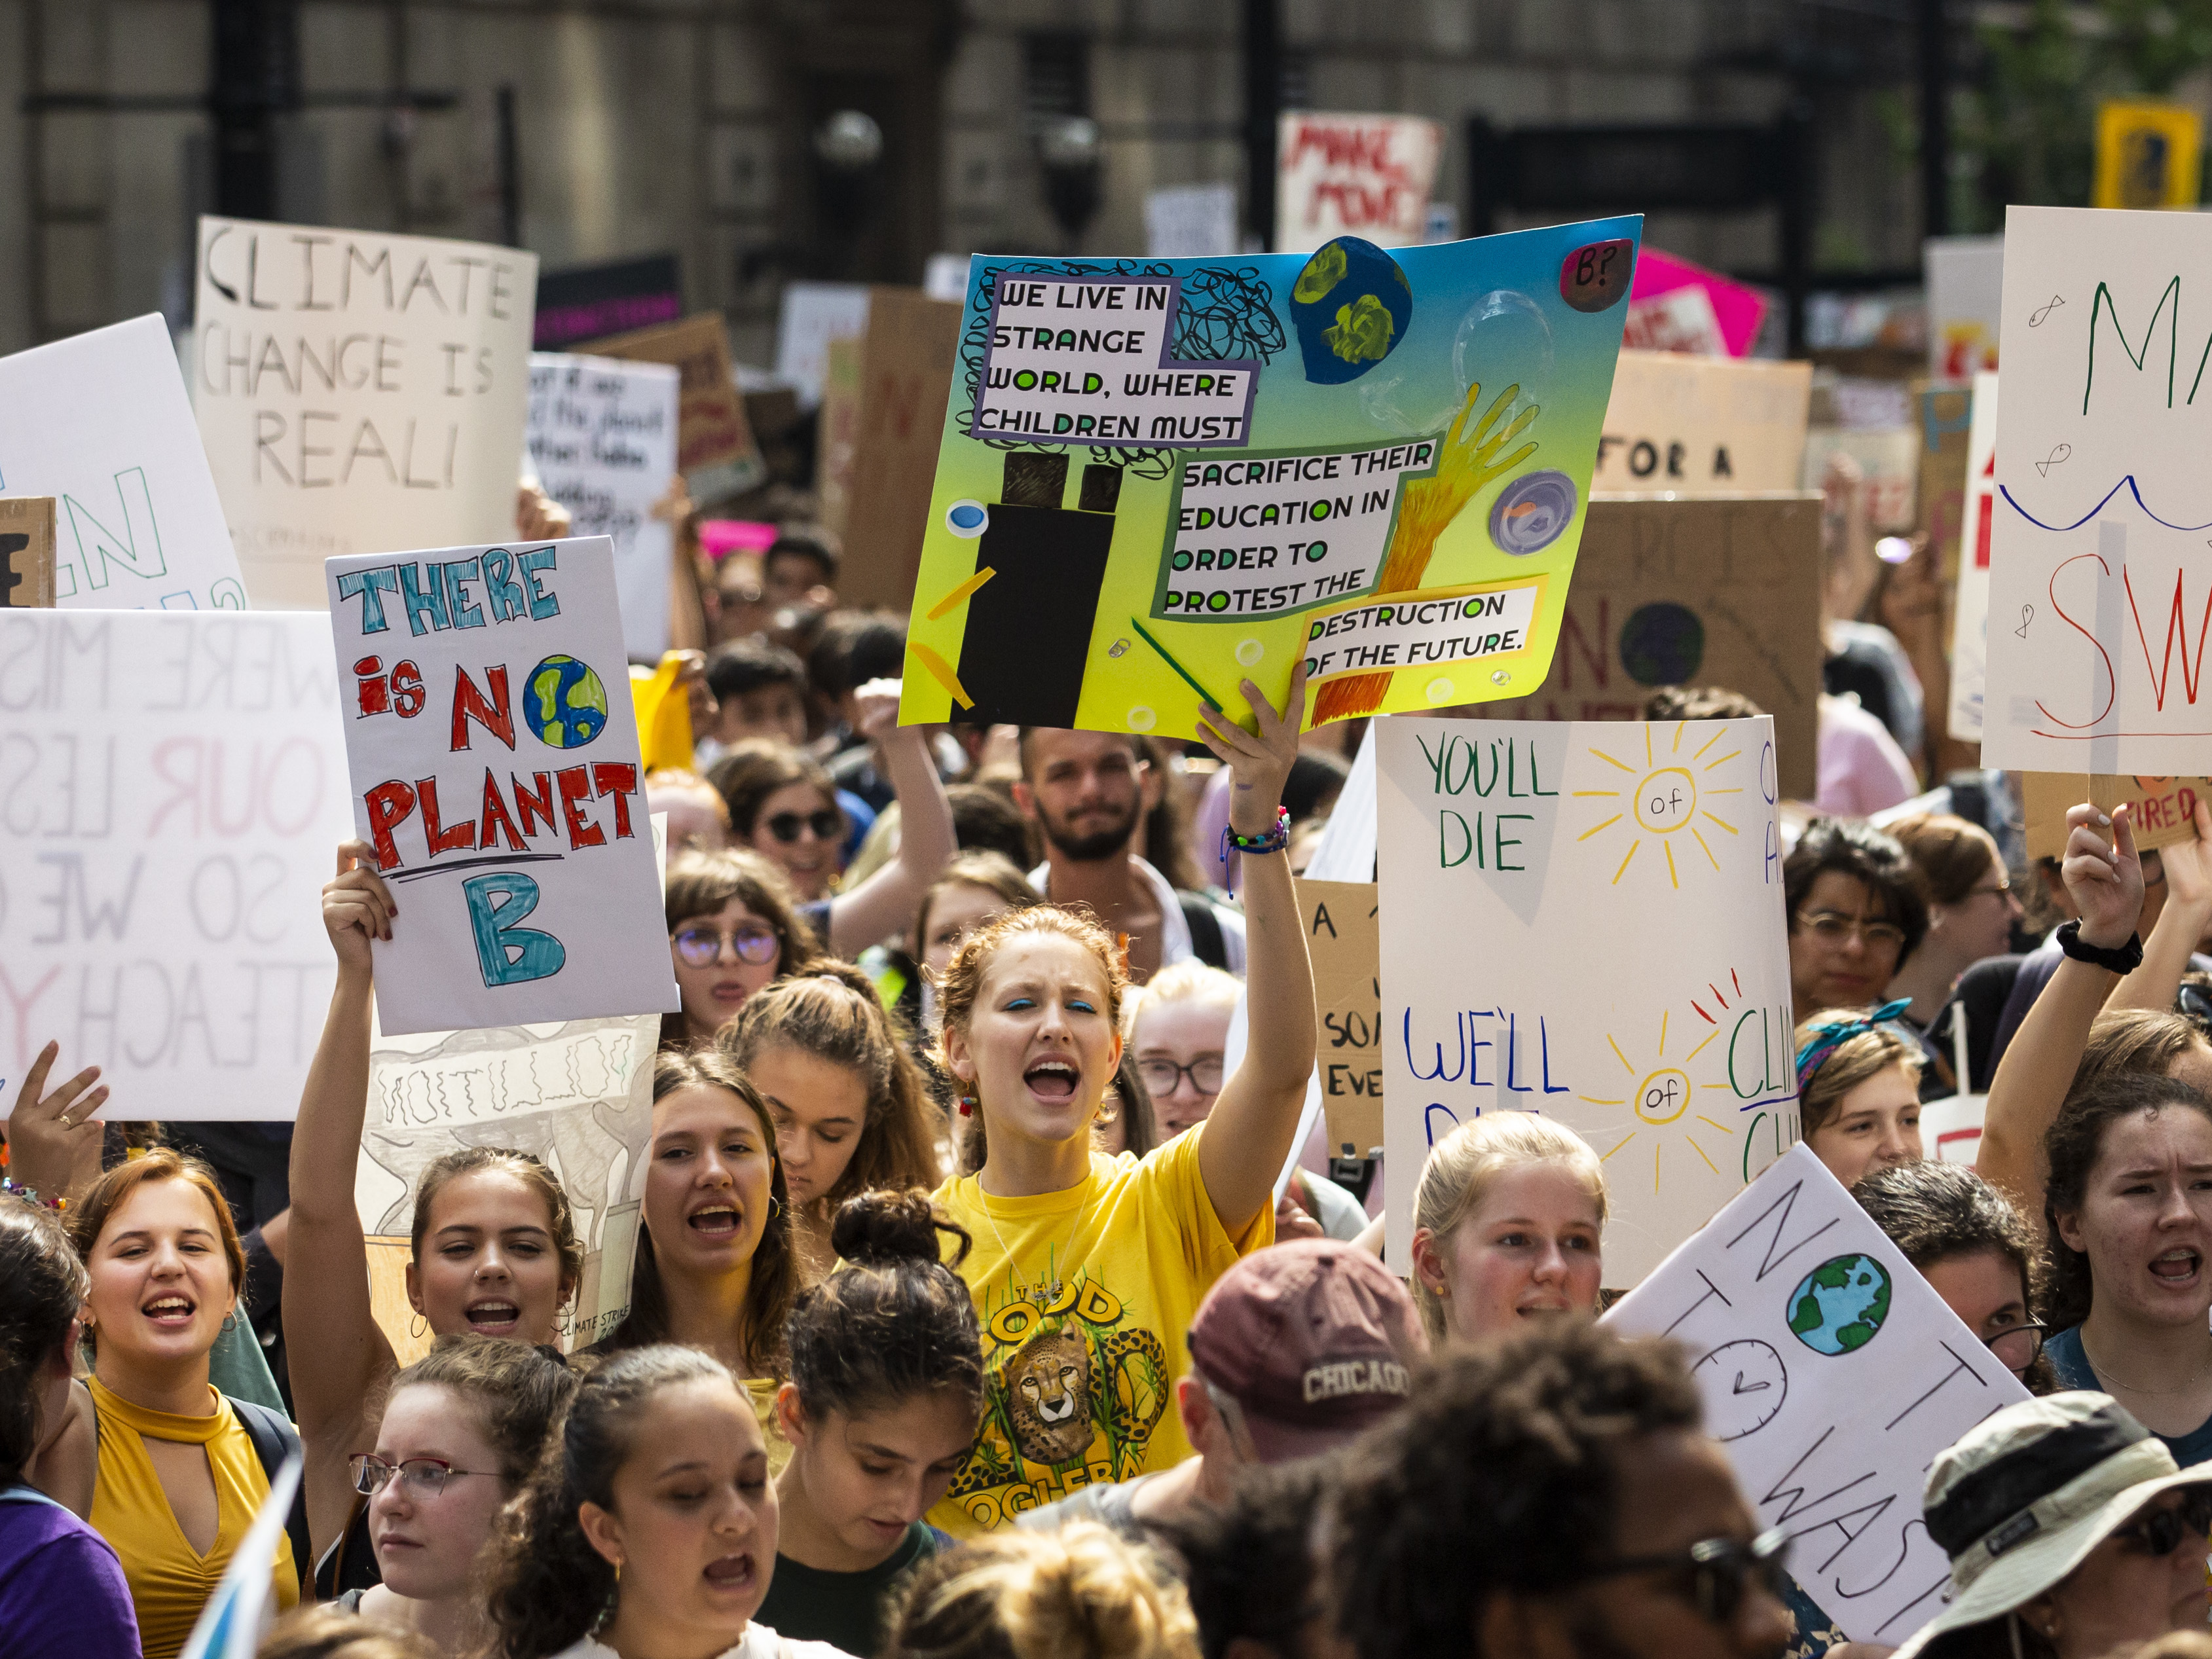 Thousands march from Grant Park to Federal Plaza in Chicago as part of the Chicago Youth Climate Strike, demanding climate action ahead of a UN emergency climate summit, Friday, Sept. 20, 2019.